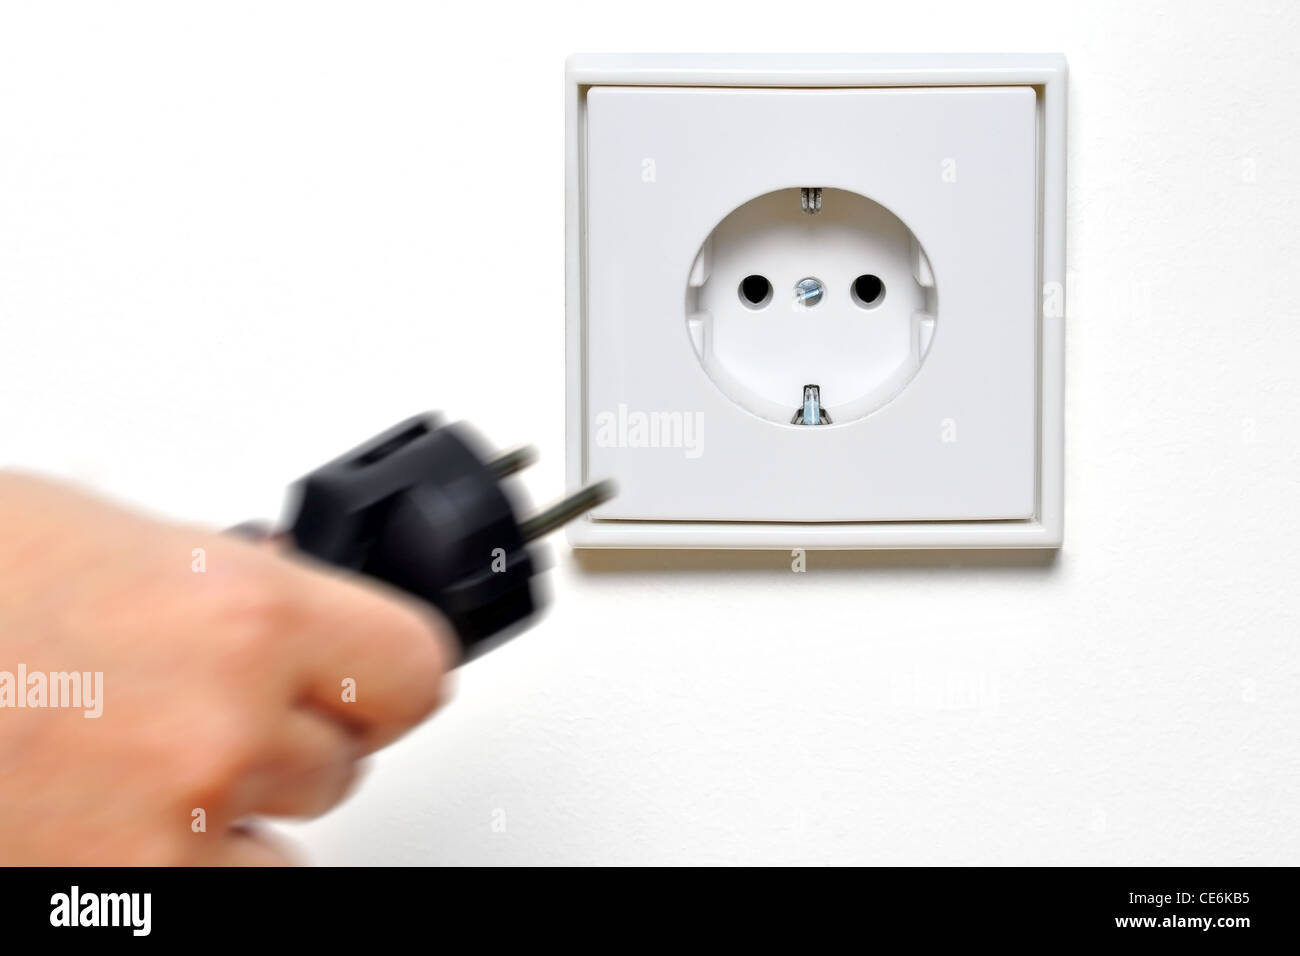 Hand connecting a plug to a socket - Stock Image